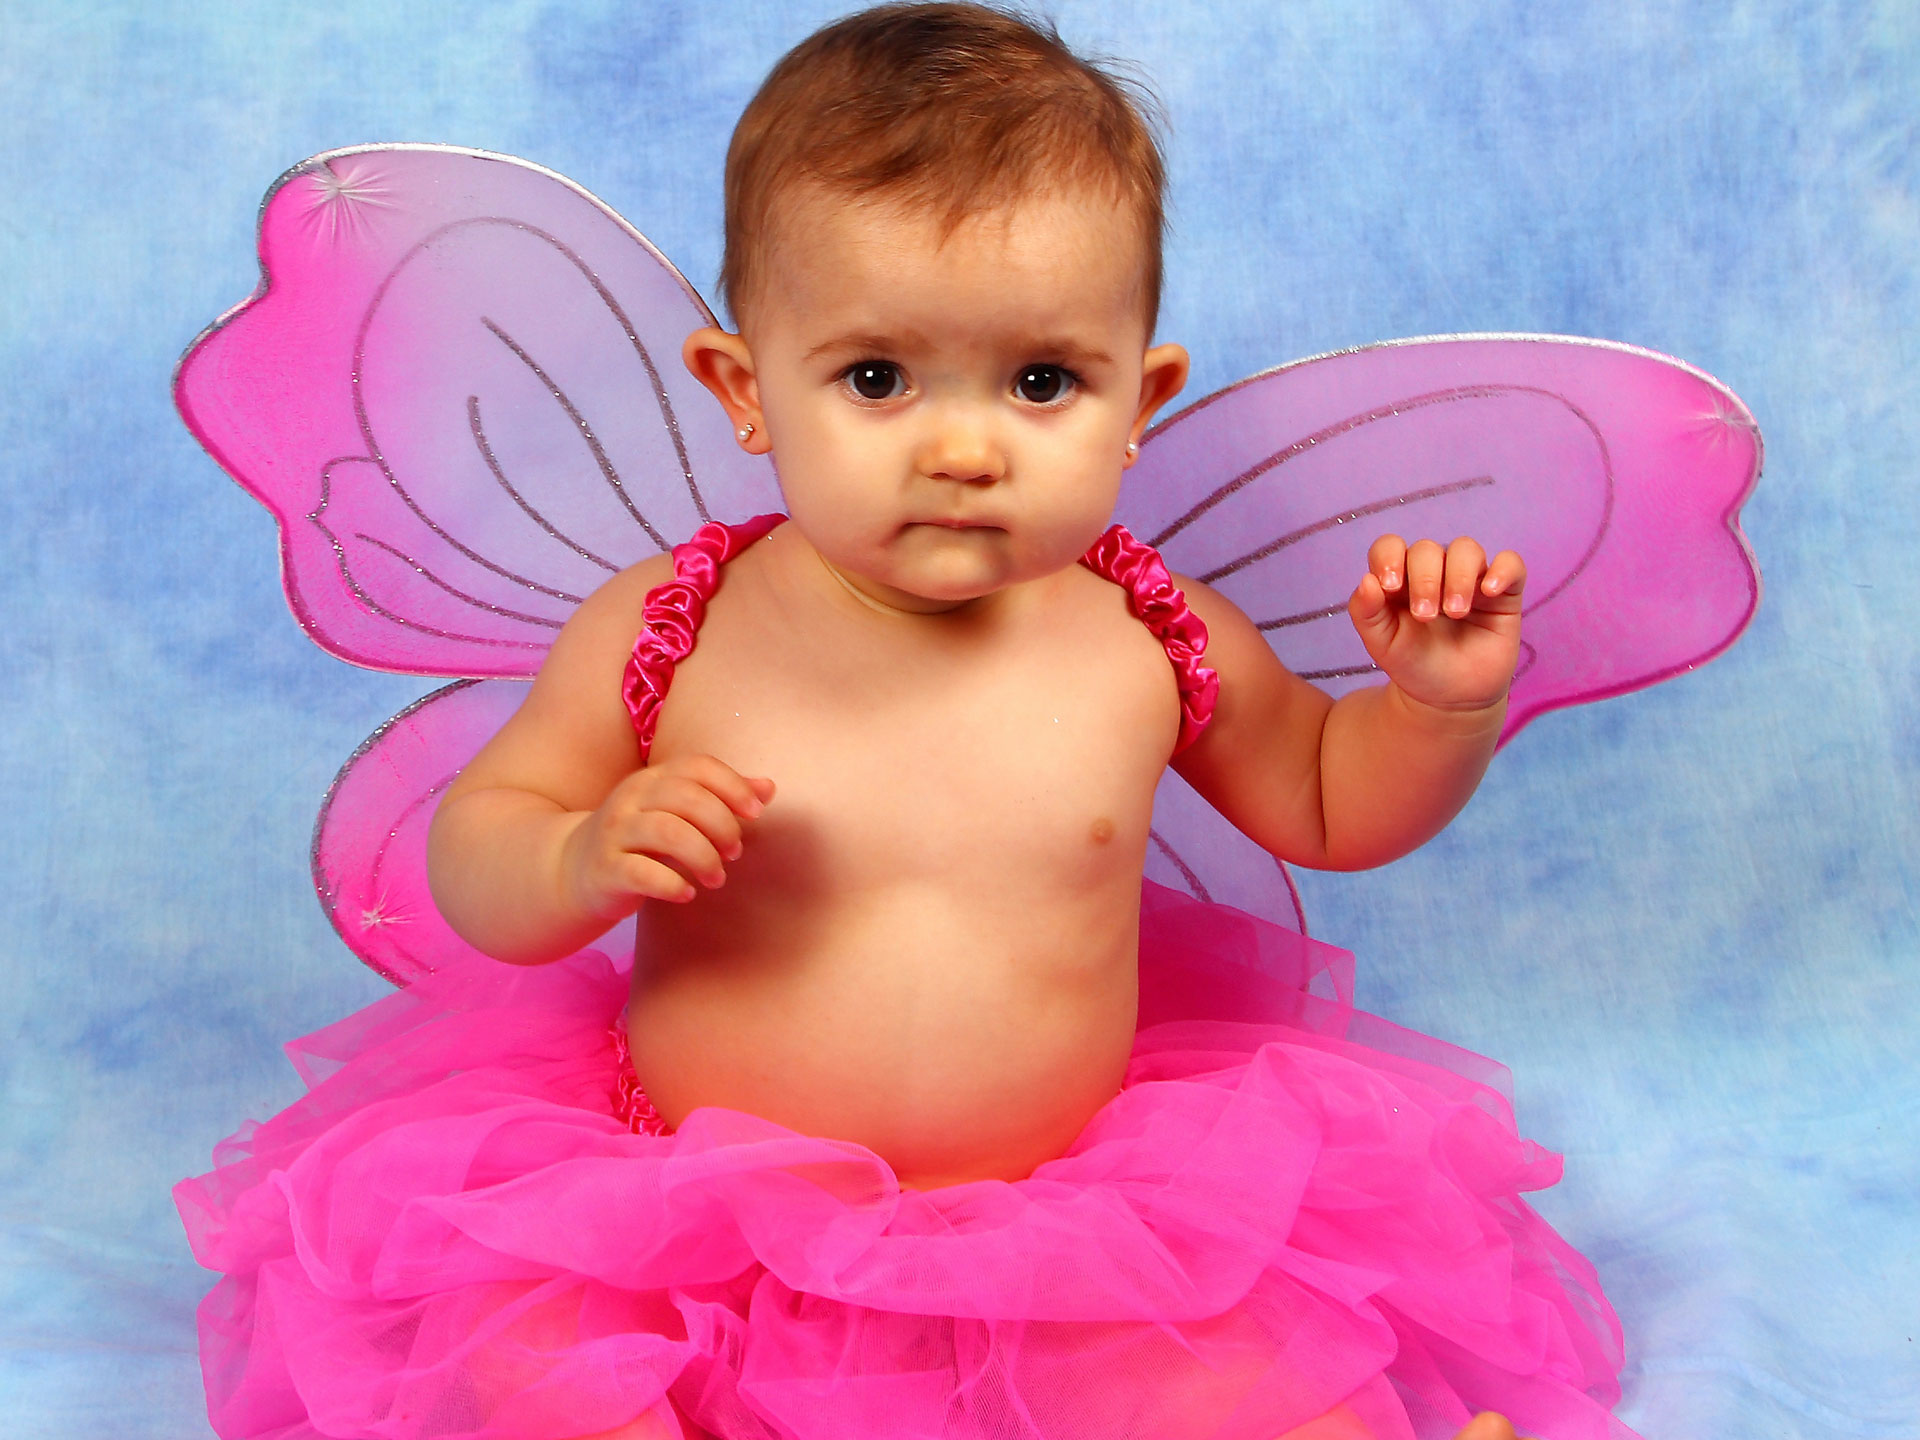 Pics Of Cute Baby Girls Wallpaper